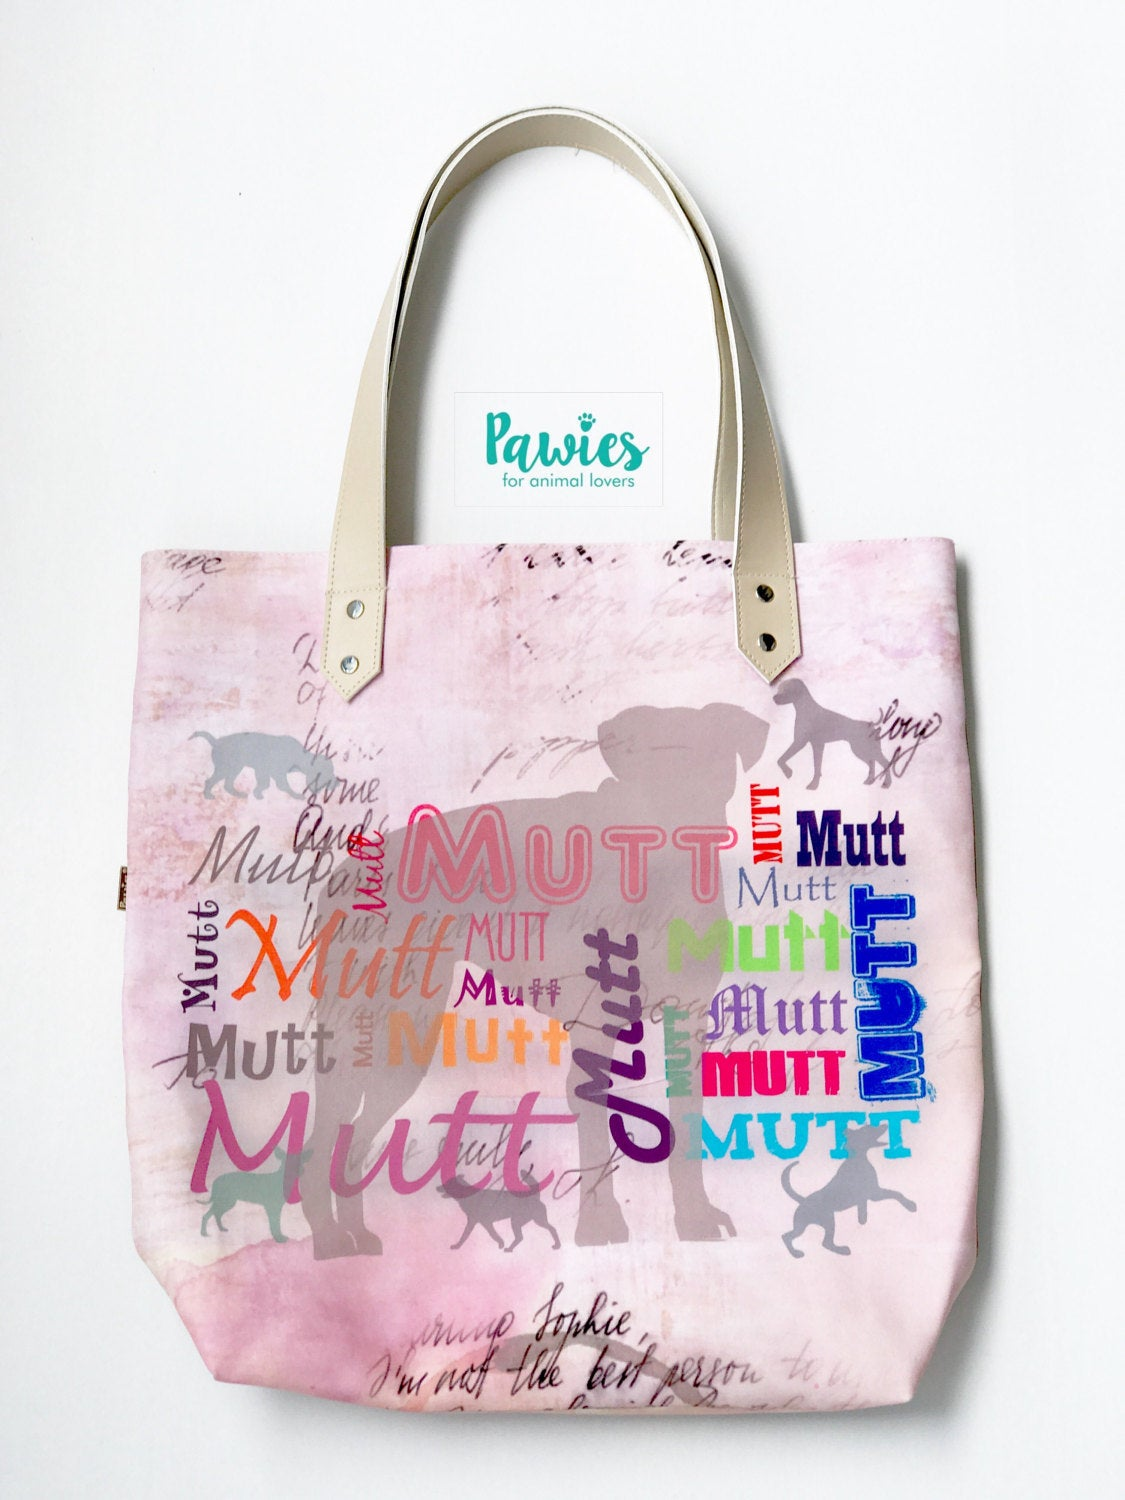 MUTT TOTE BAG !! Rescue dog, tote bag, animal lovers, dog lovers.